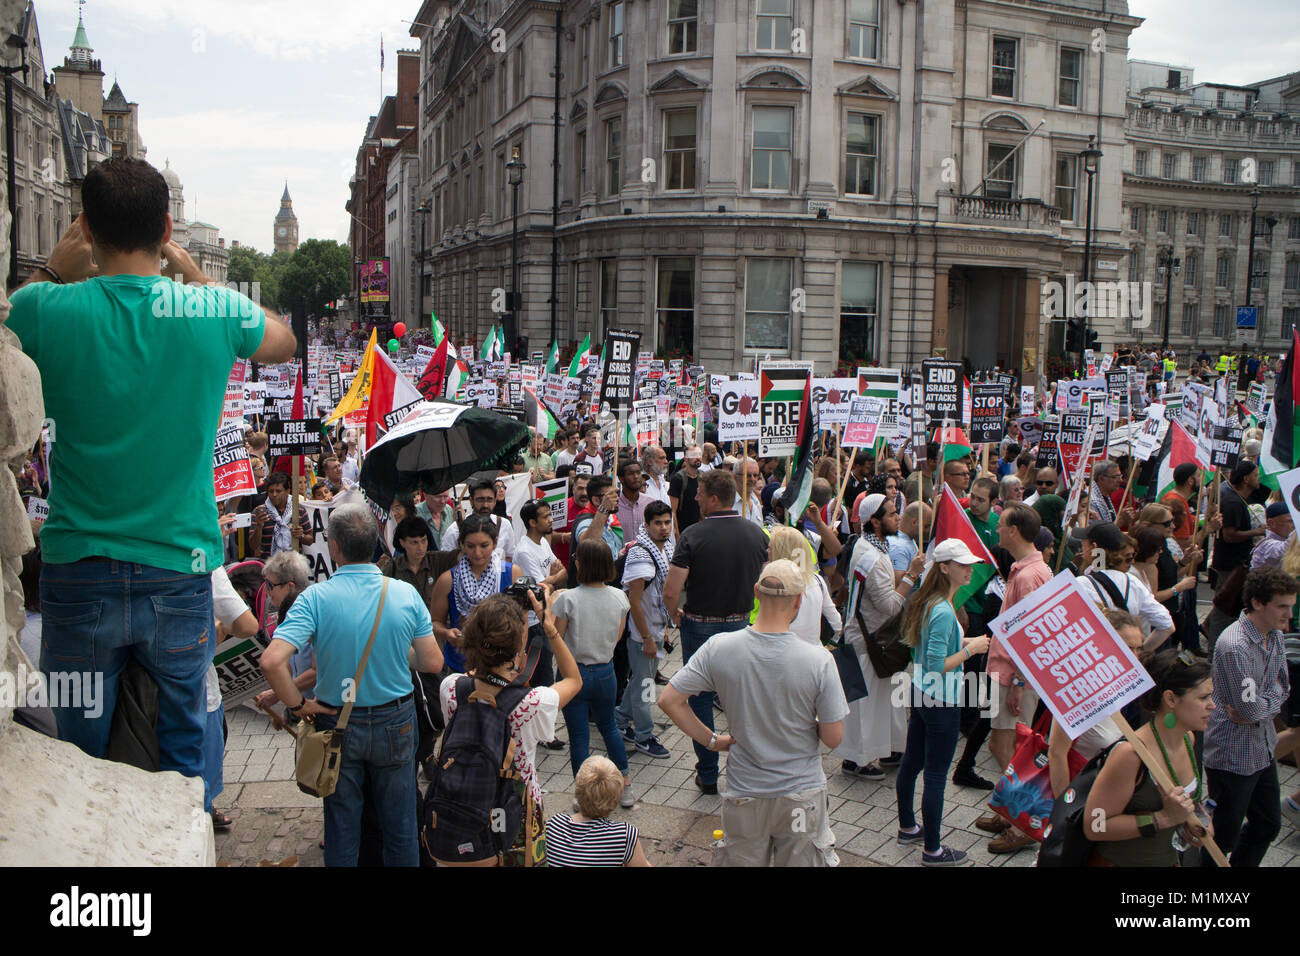 Gaza Demo - Free Palestine, At Westminister - Stock Image